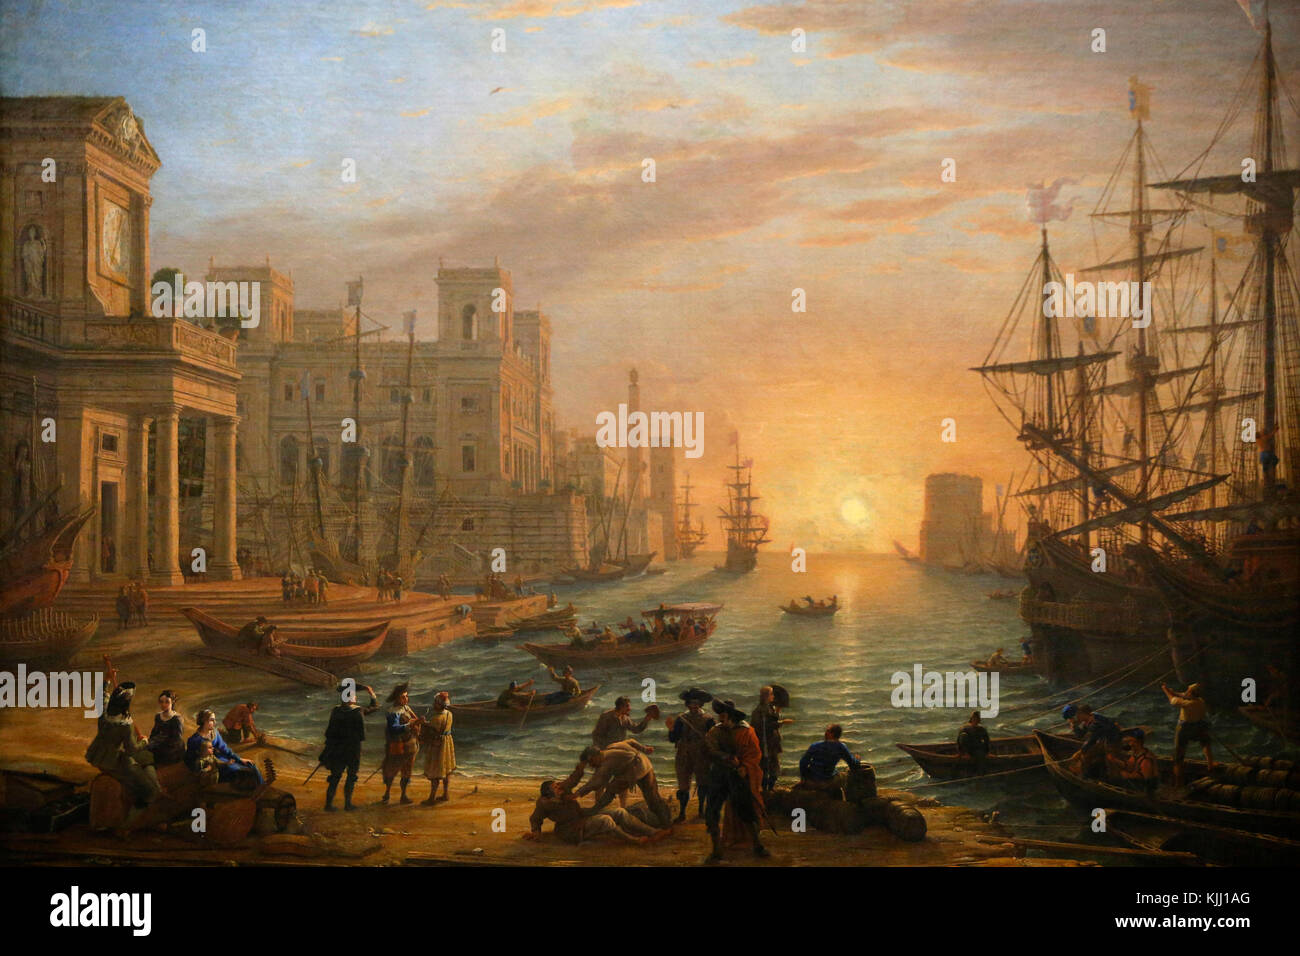 Louvre museum. Harbour at sunset. Claude Gellee called Claude Lorrain. 1639. France. - Stock Image